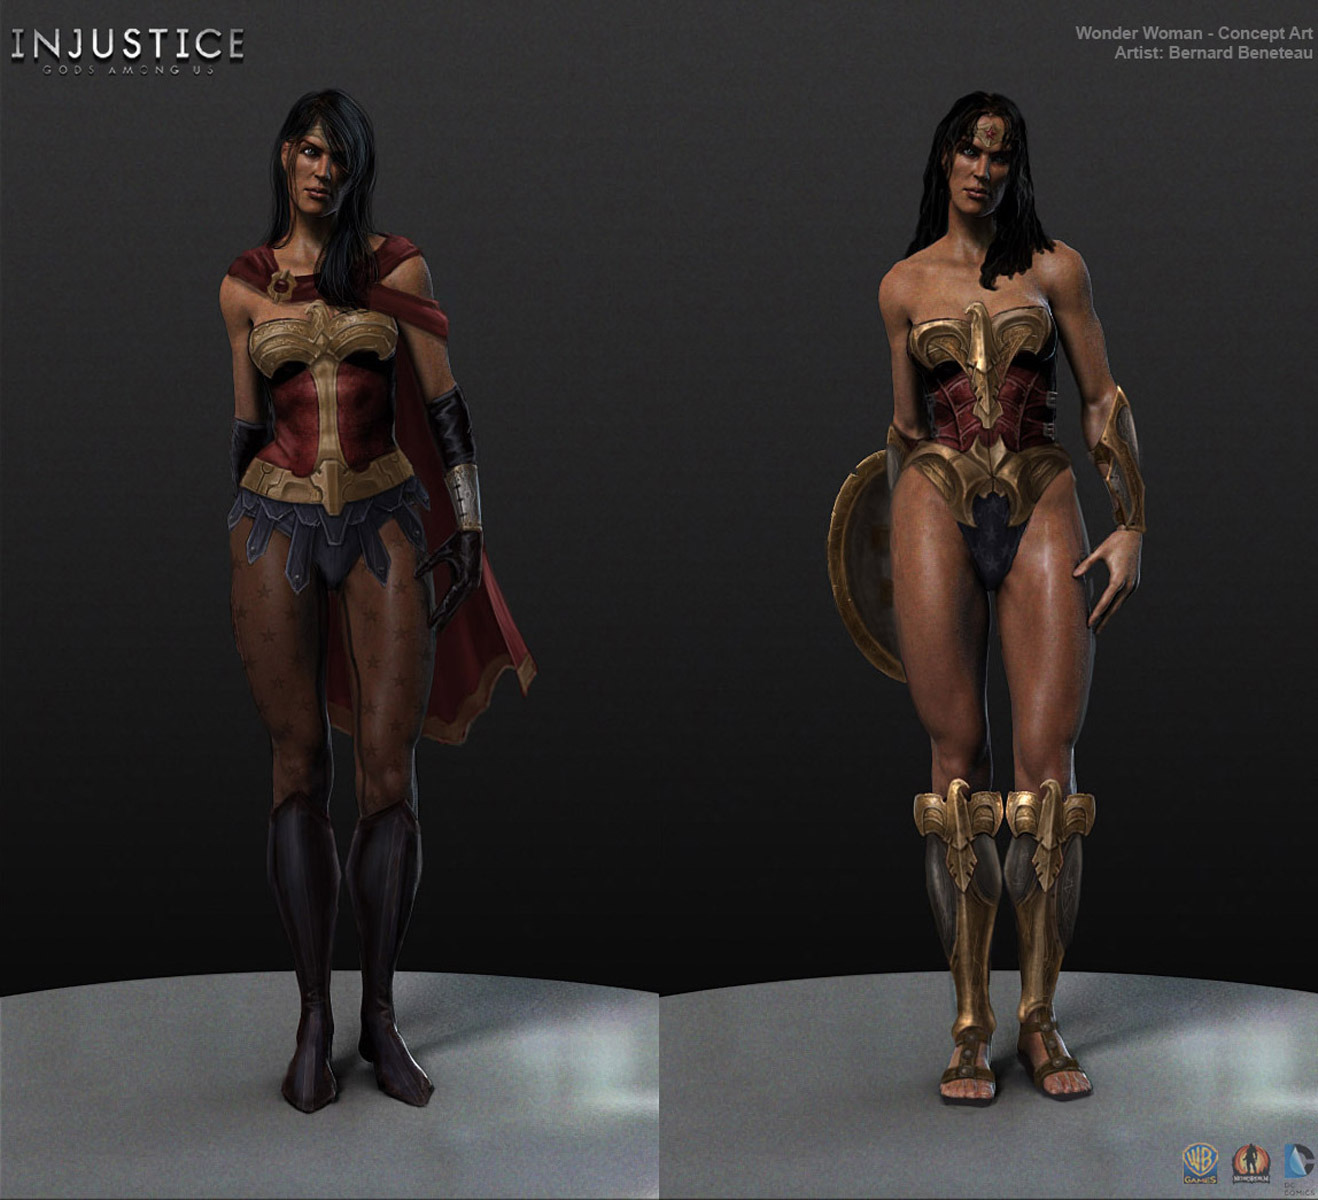 Concept Art Injustice Injustice Superman Concept Art